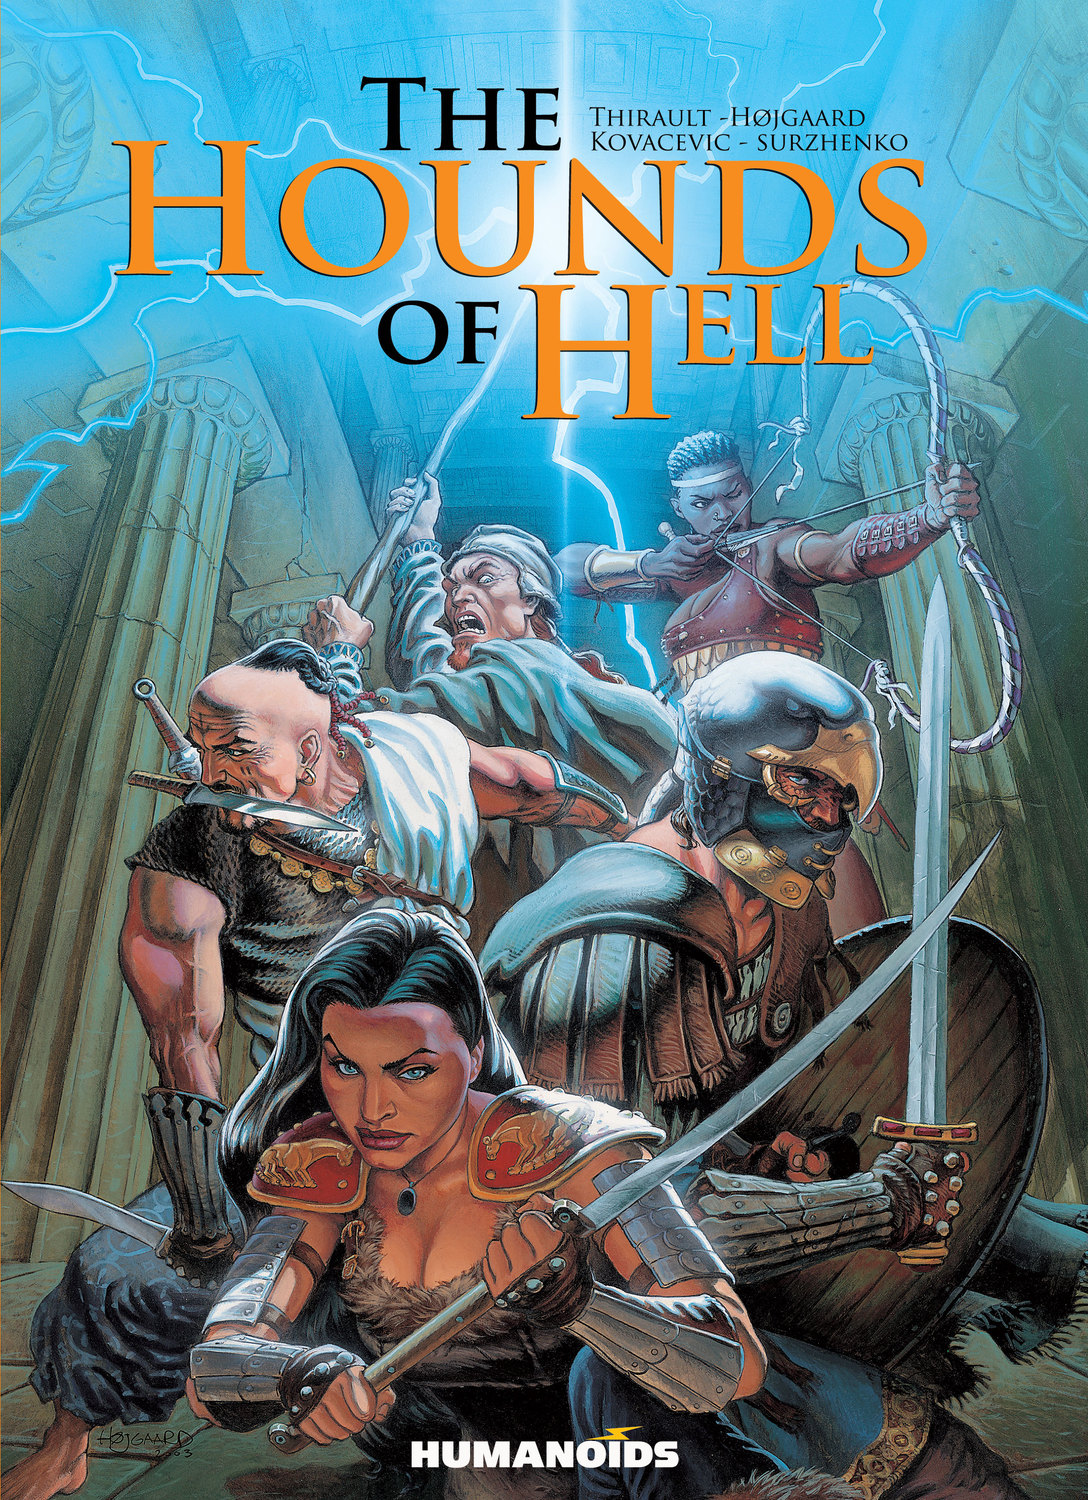 The Hounds of Hell - Softcover Trade